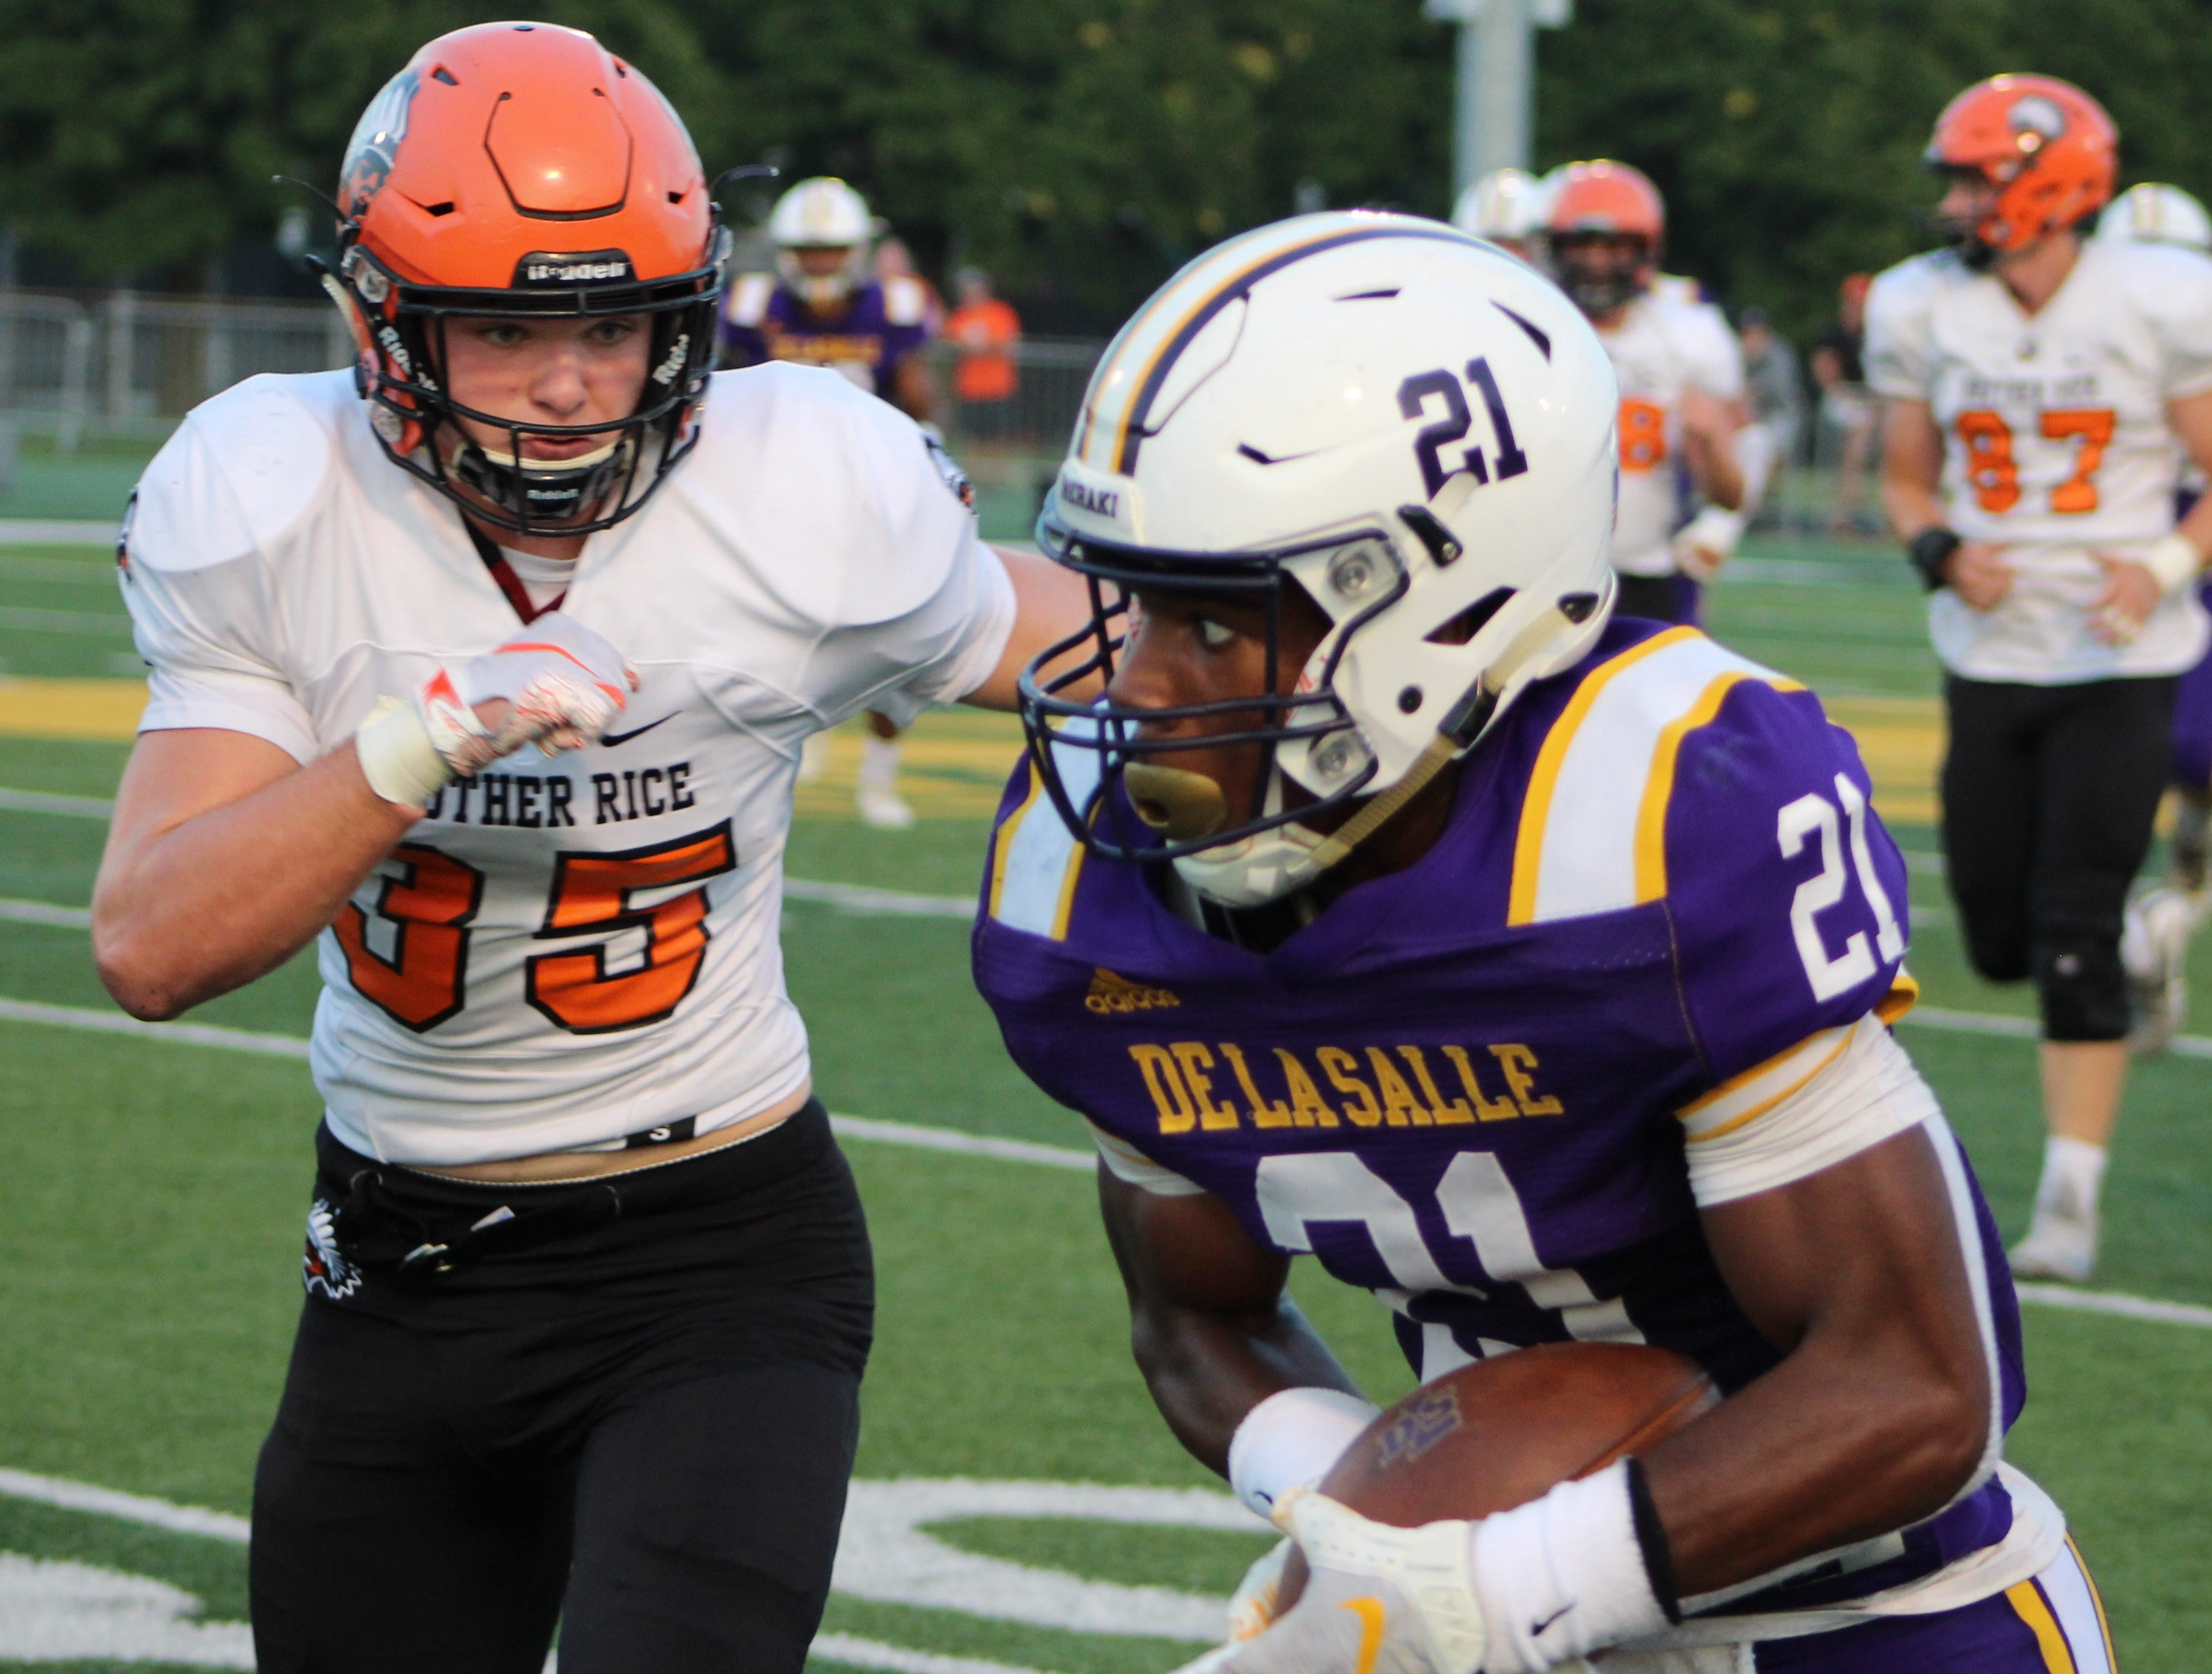 De La Salle receiver Joshua DeBerry (21) is chased down by Brother Rice defender John Hoen (35).